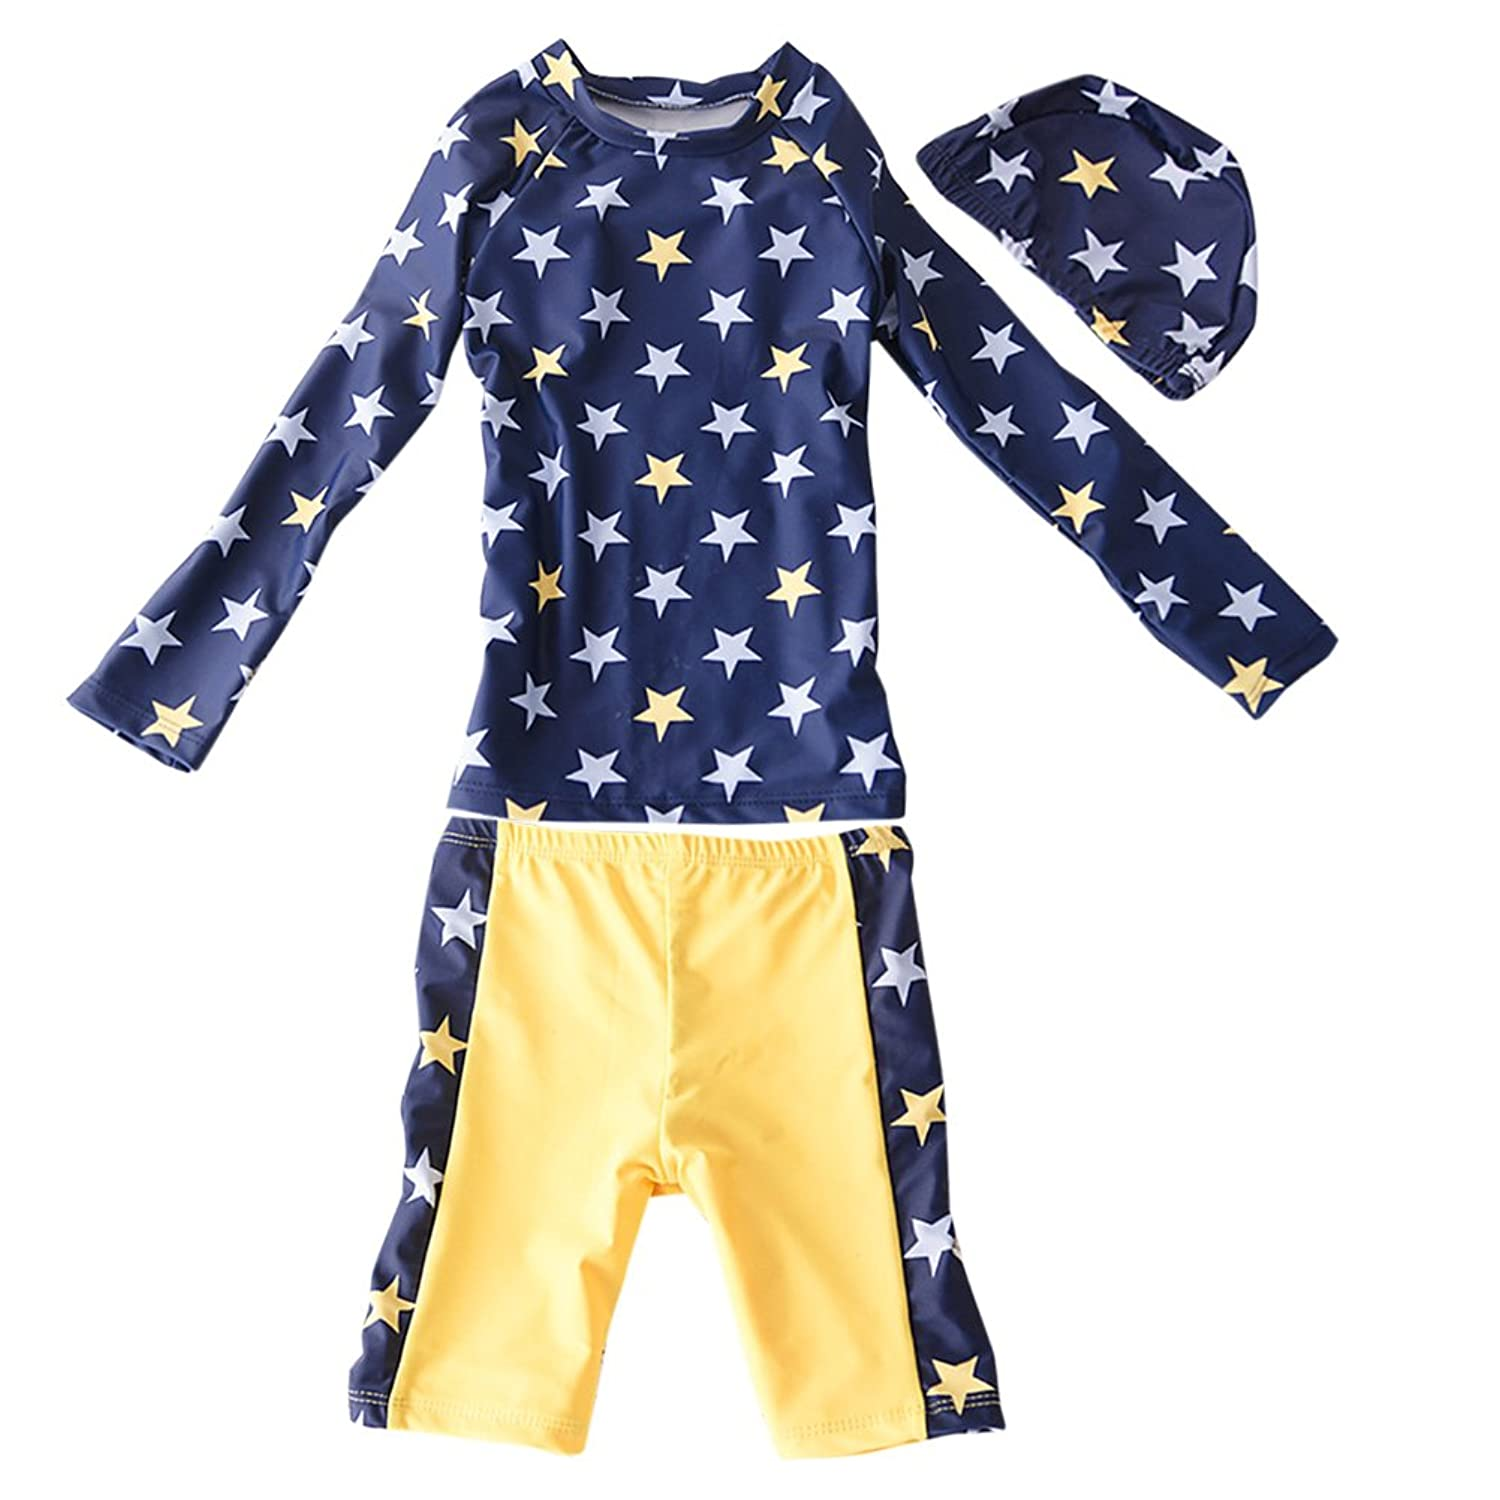 Zhhlaixing Baby Boys Cute Star Pattern Beach Sun protection Swimsuit 児童 Long sleeve Swim Tops+Shorts+Hats